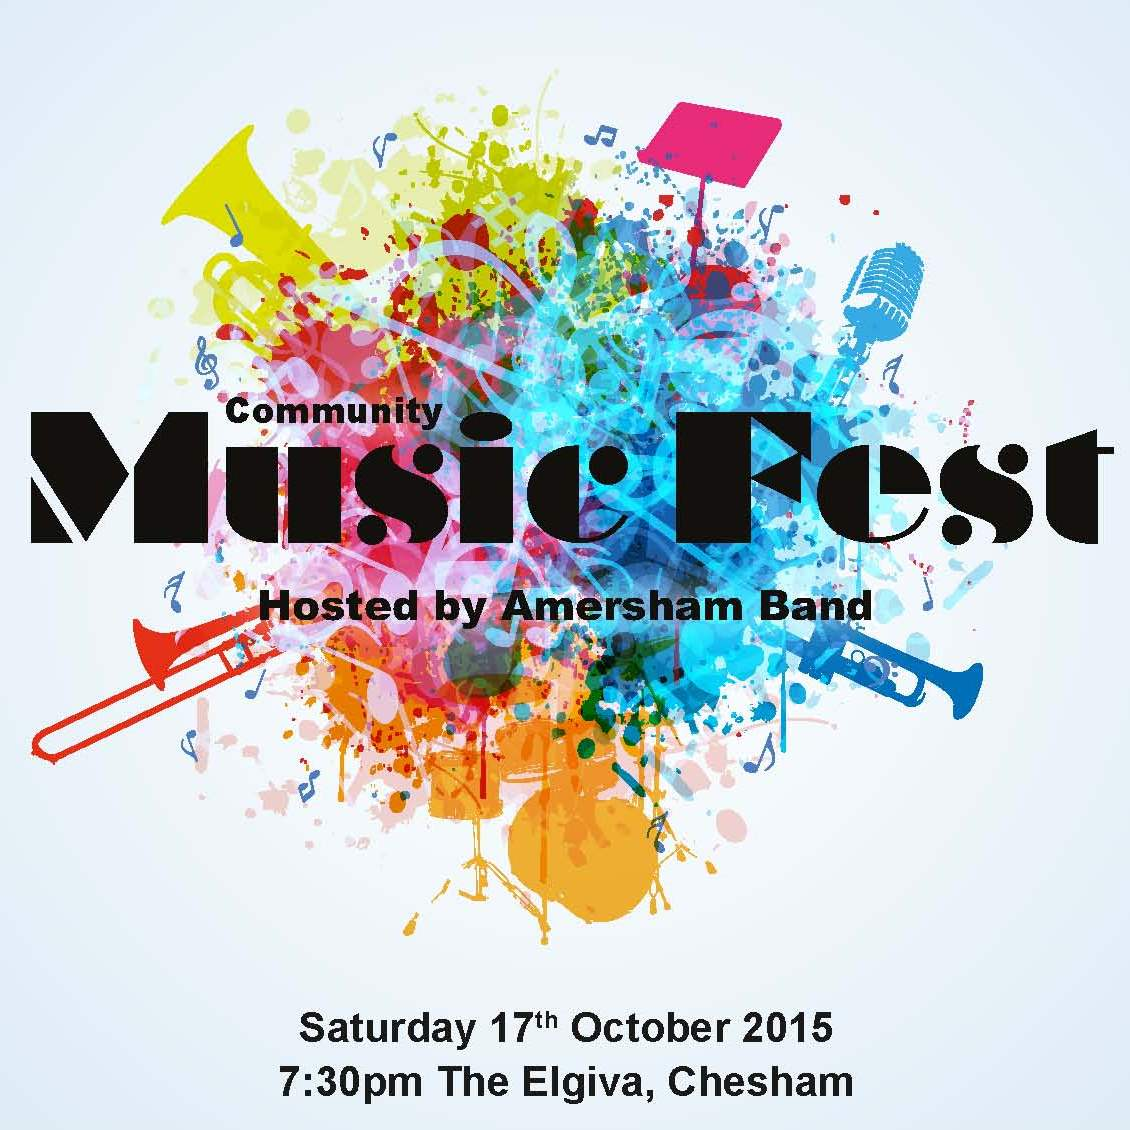 Don't Miss the Community MusicFest